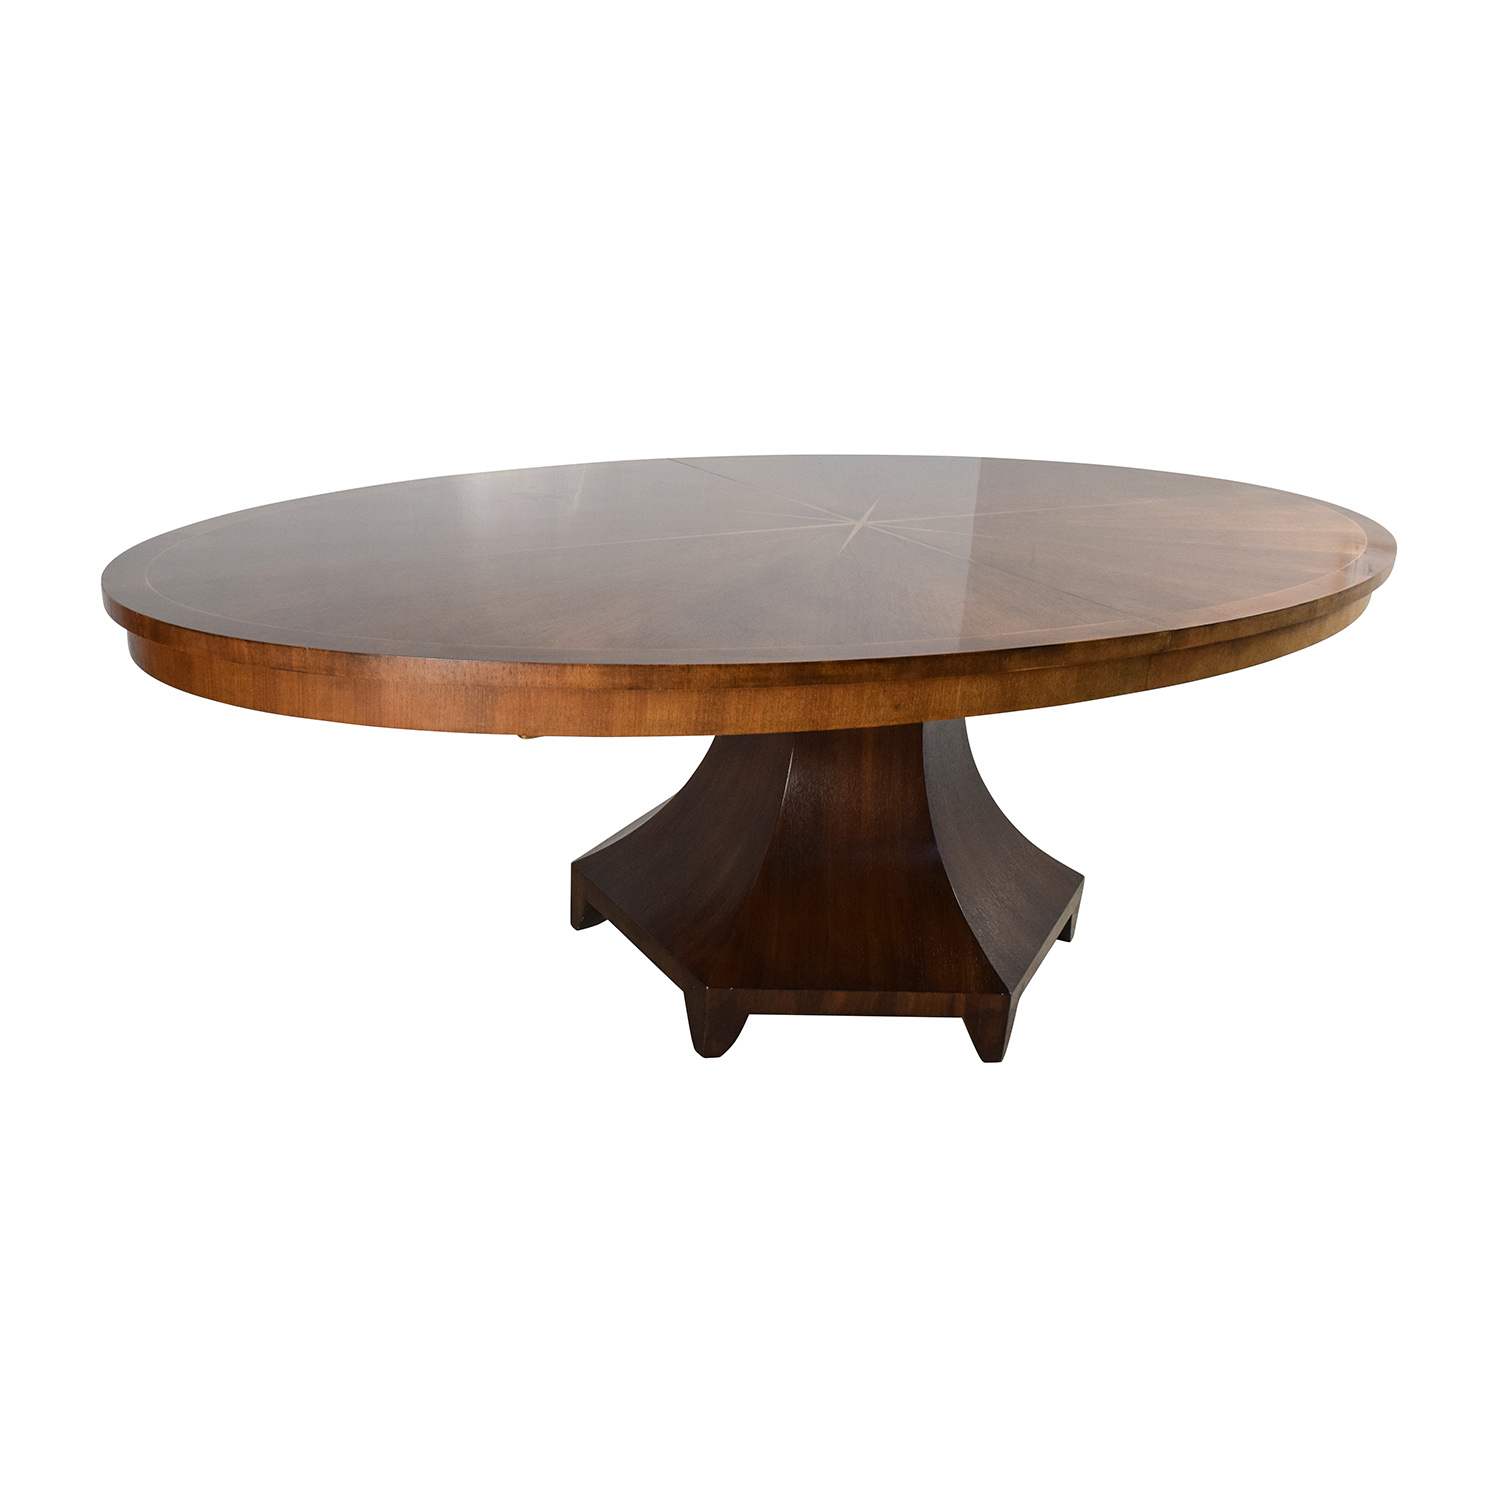 67 off henredon henredon celestial oval table designed by henredon henredon celestial oval table designed by barbara barry tables geotapseo Image collections